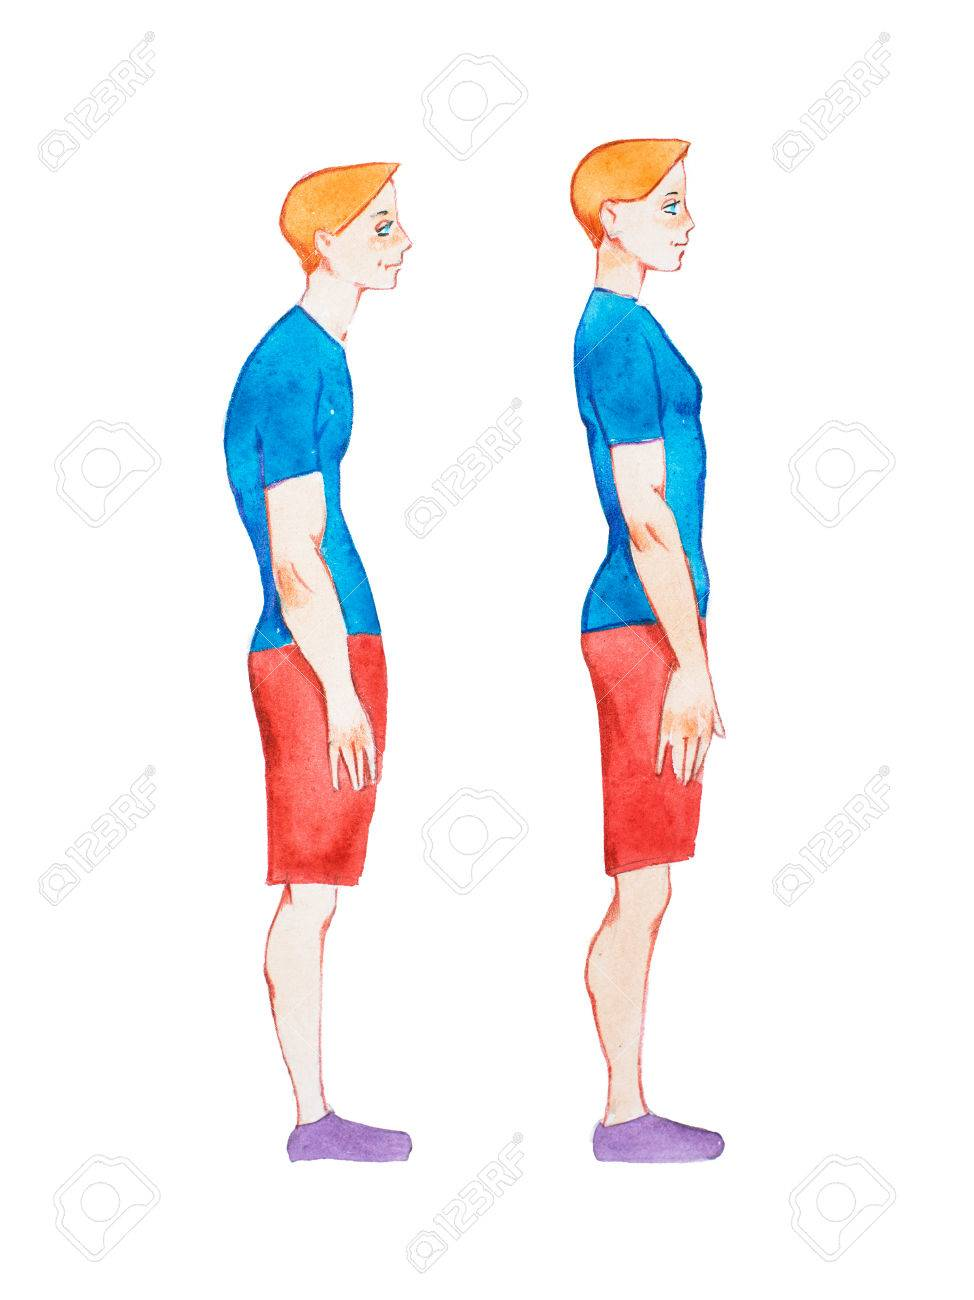 Watercolor illustration of people with right and wrong posture. Man with normal healthy spine and abnormal sick spine in comparison - 80550973